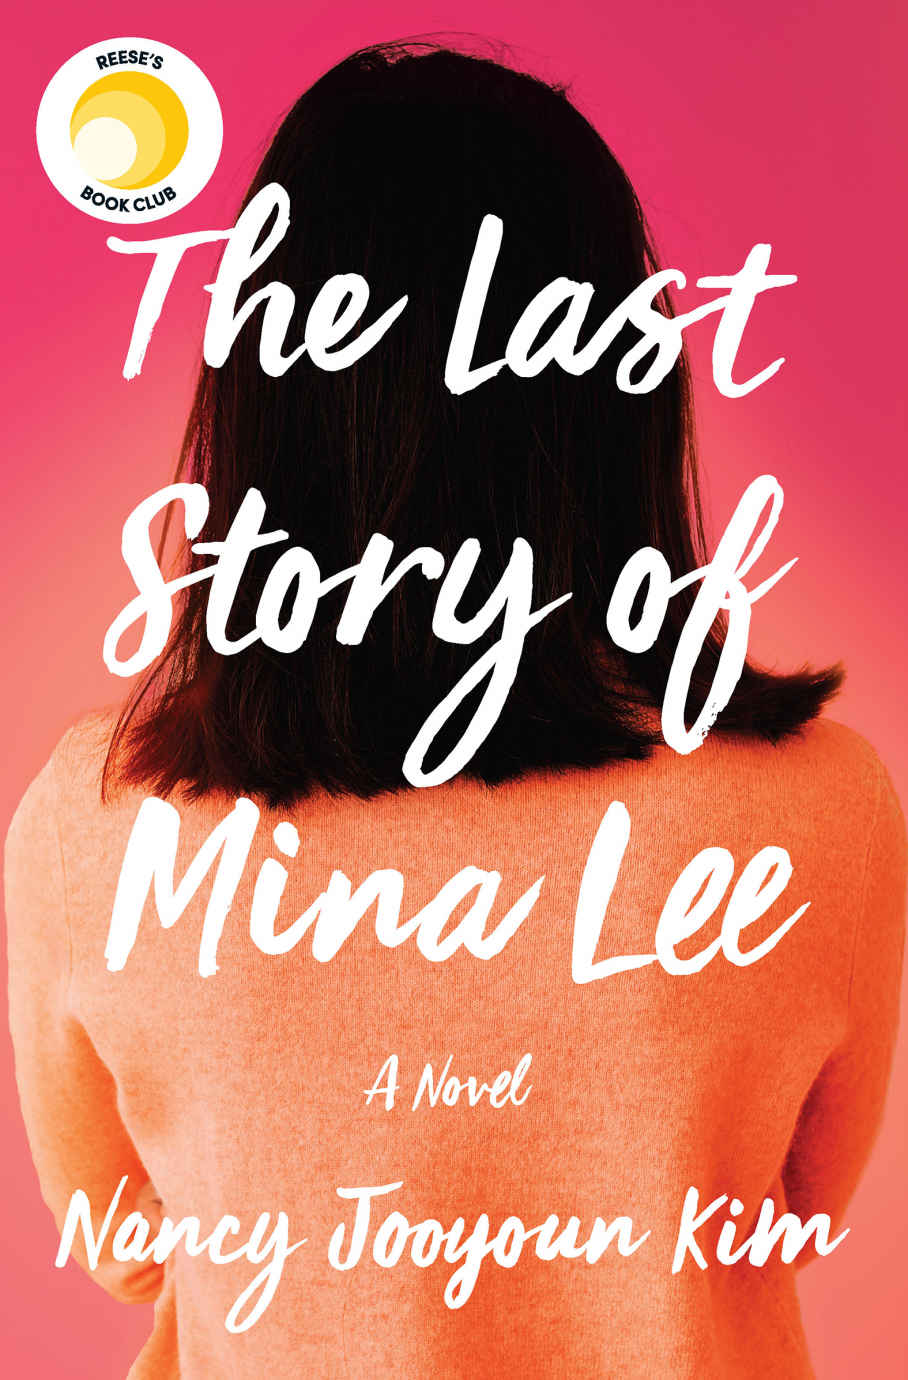 Reese Witherspoon Picks 'The Last Story of Mina Lee' for Hello Sunshine Book Club | Book Pulse